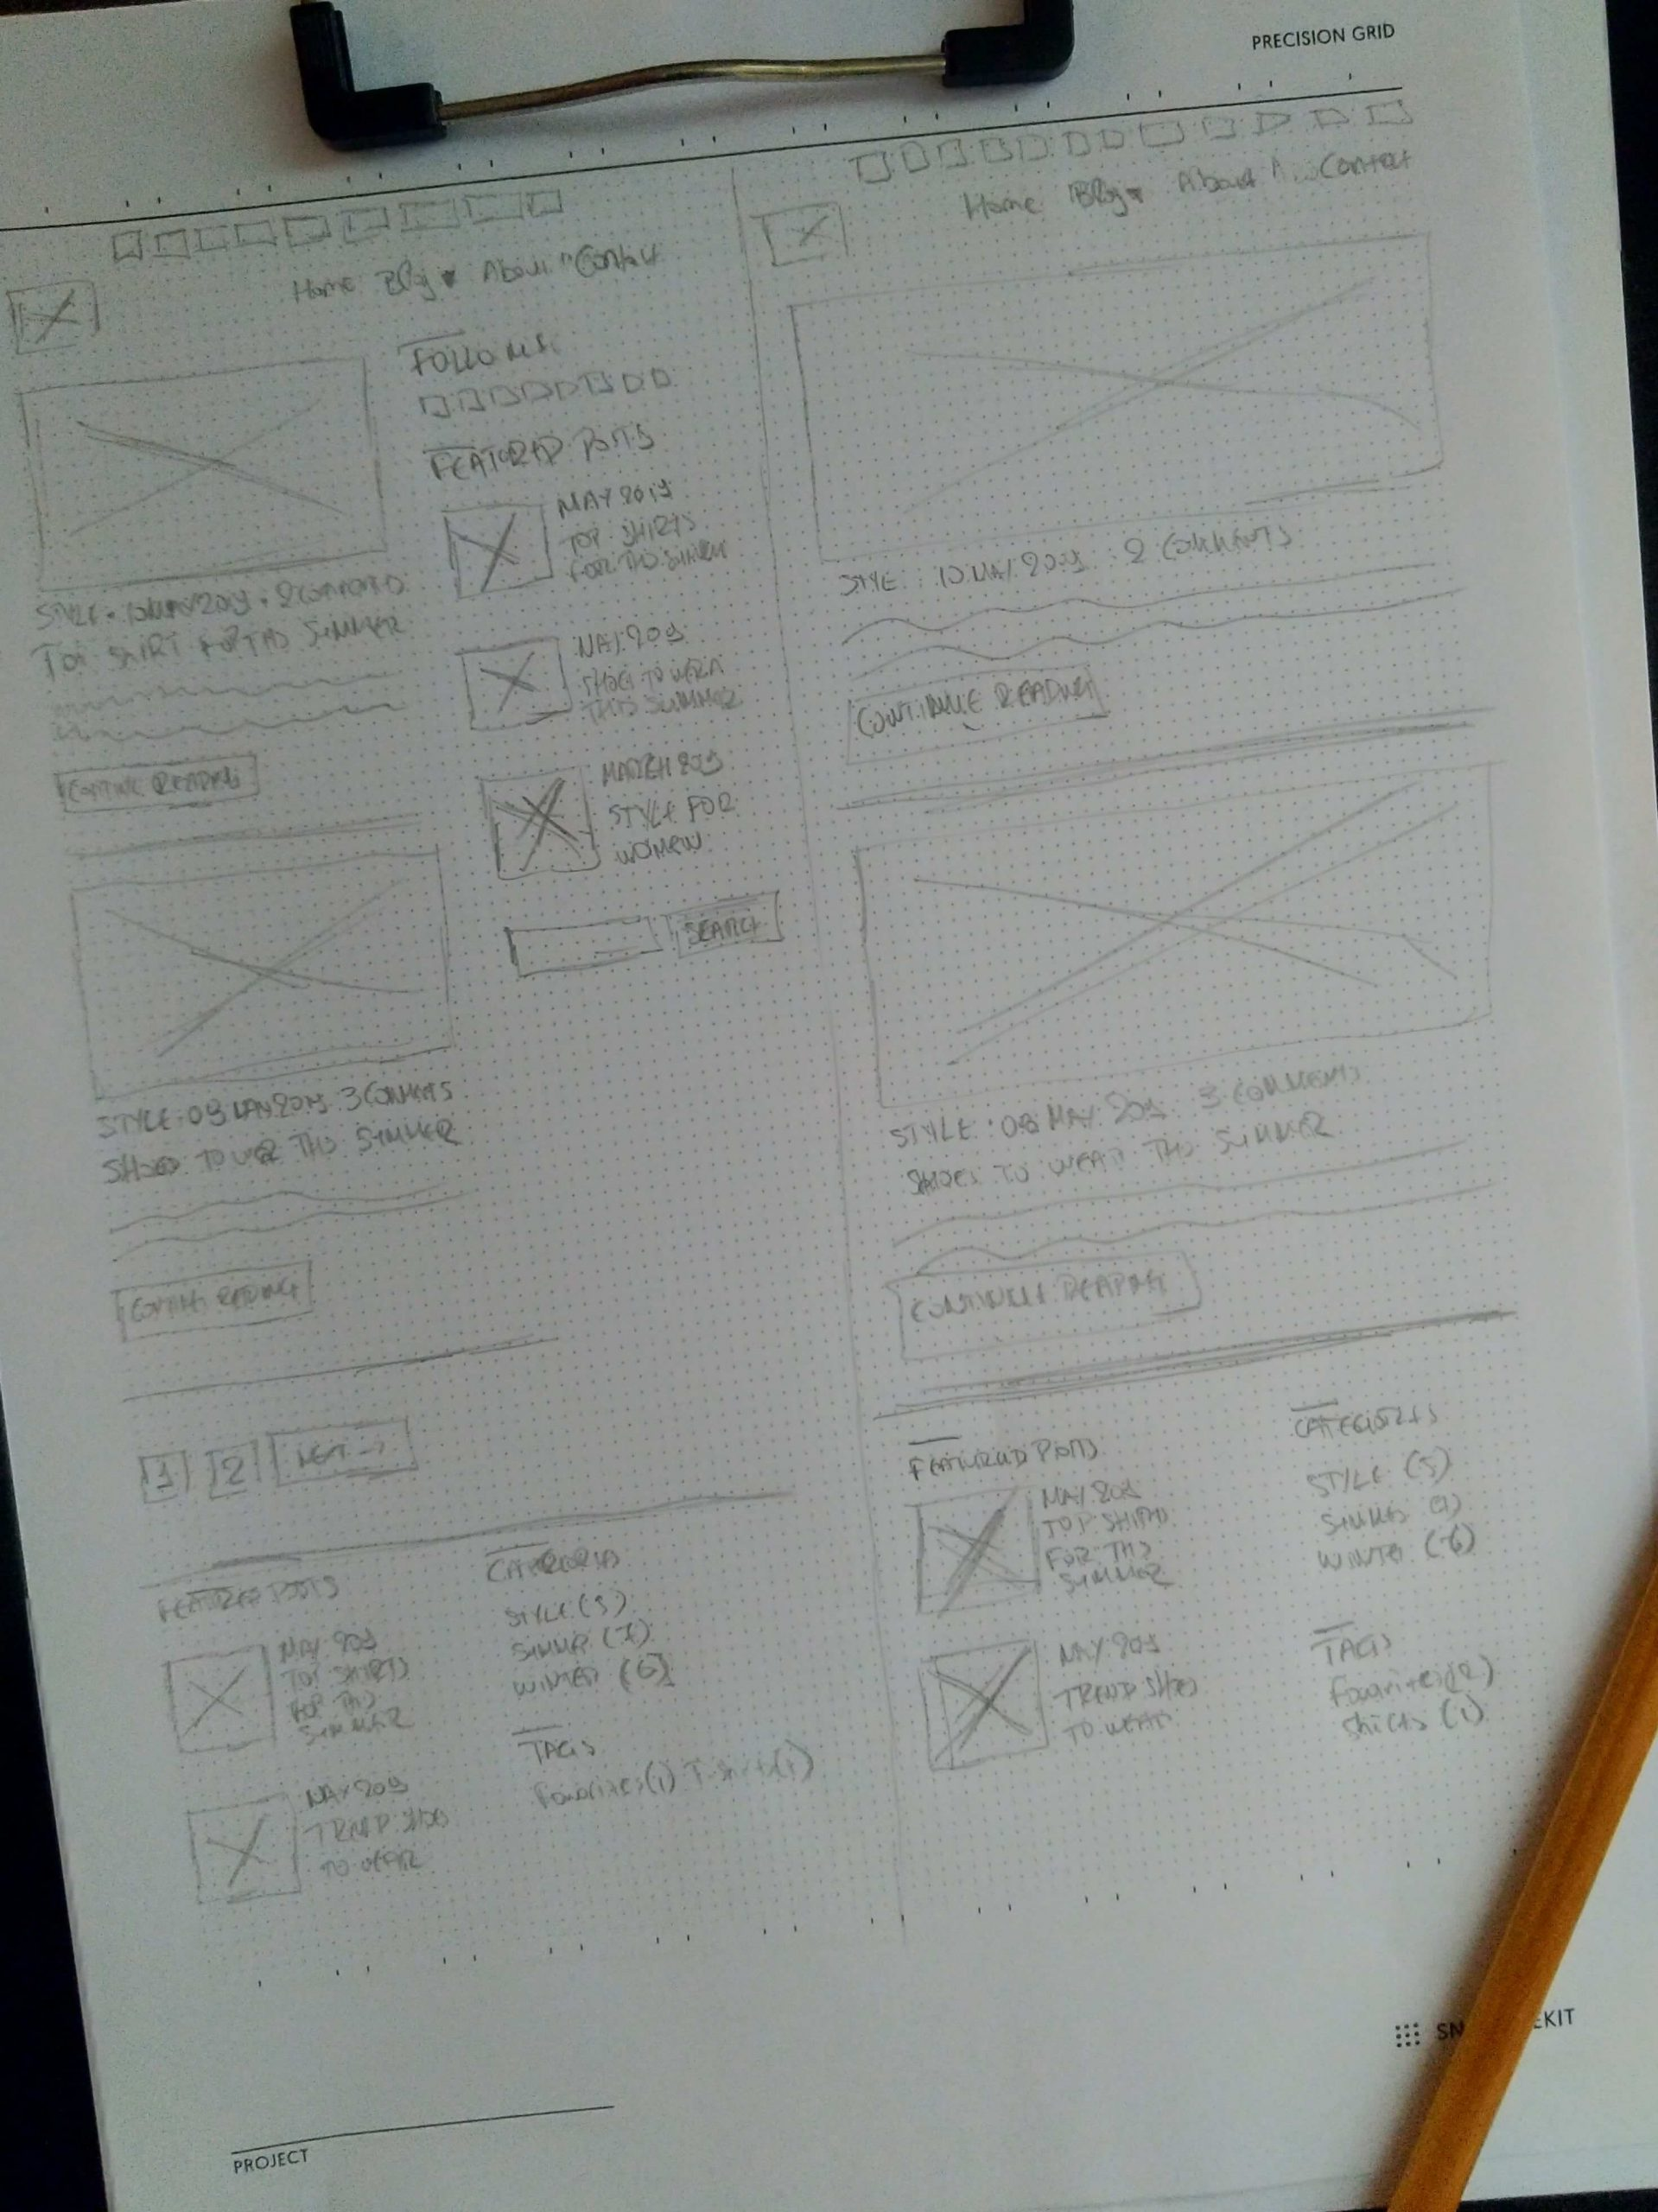 Sketching the fashionclaire blog theme